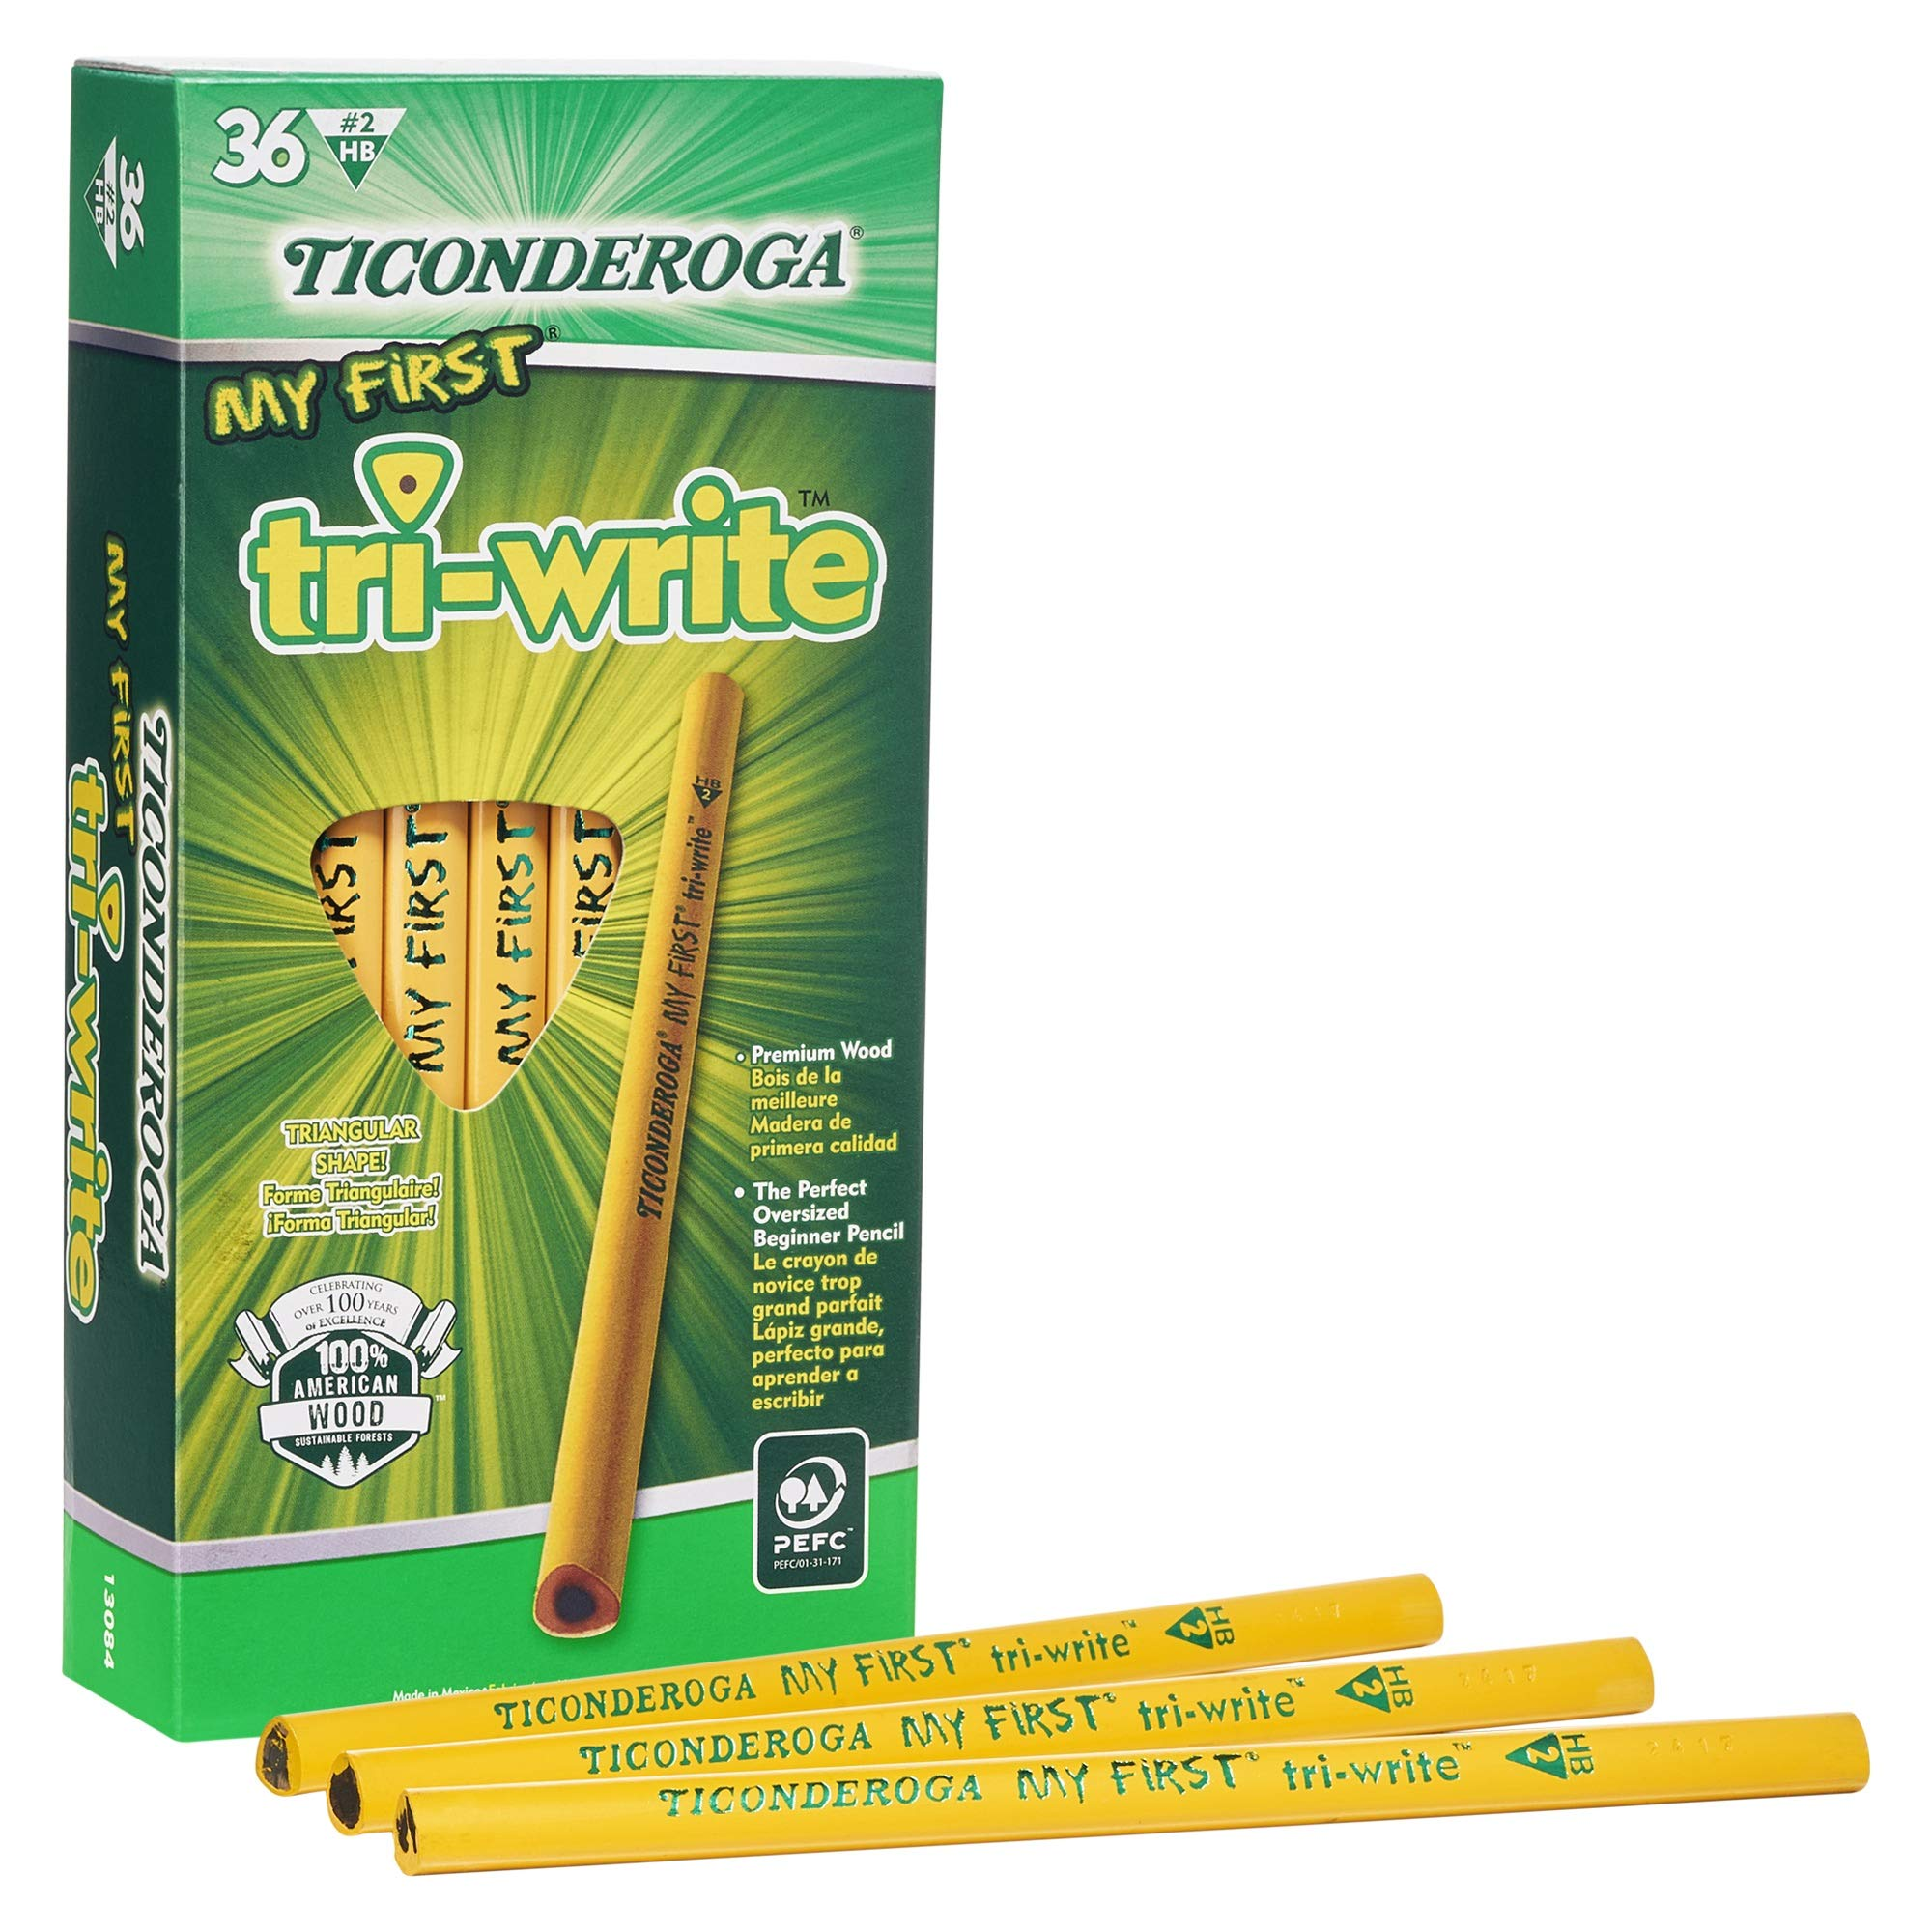 Ticonderoga My First Tri-Write Pencils without Eraser, Primary Size Wood-Cased #2 HB Soft, Yellow, 36-Pack (13084) by Ticonderoga